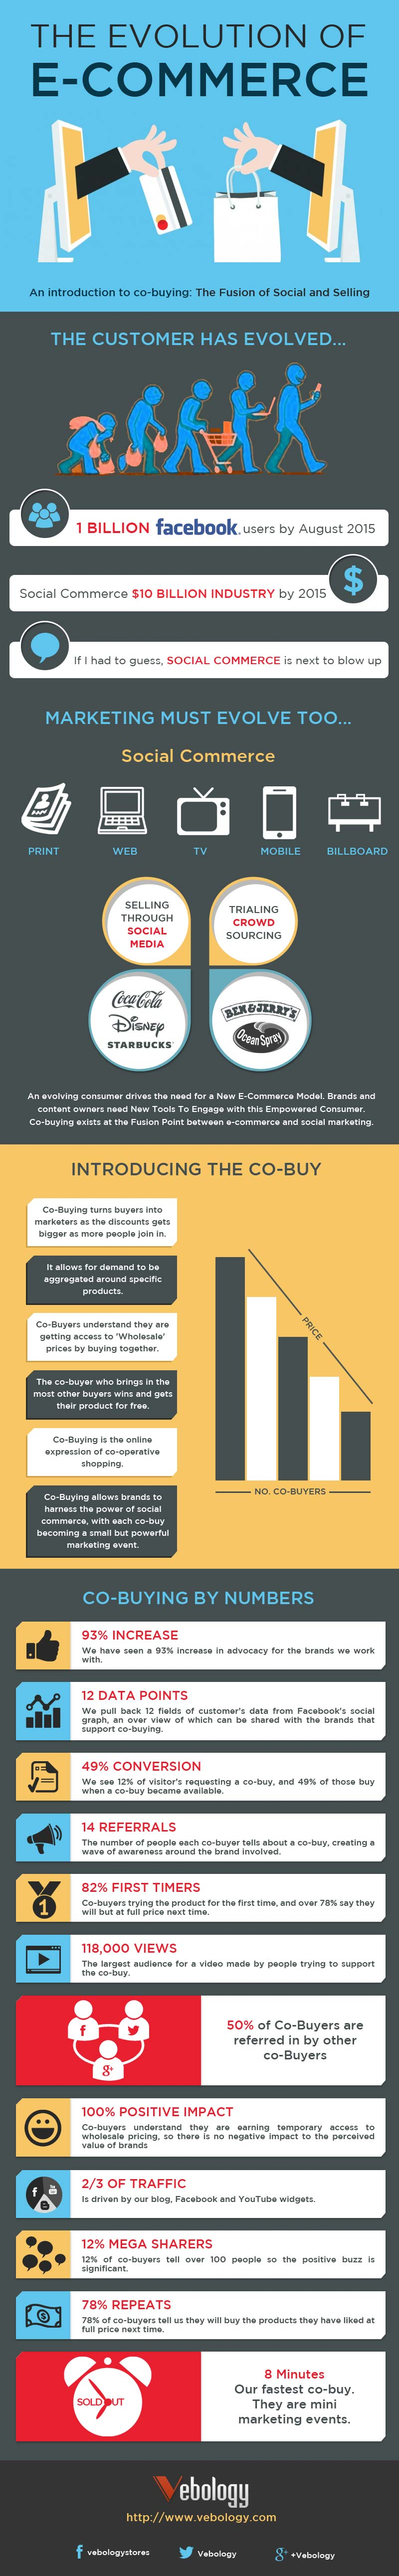 The Evolution of E-Commerce [Infographic] - Image 1